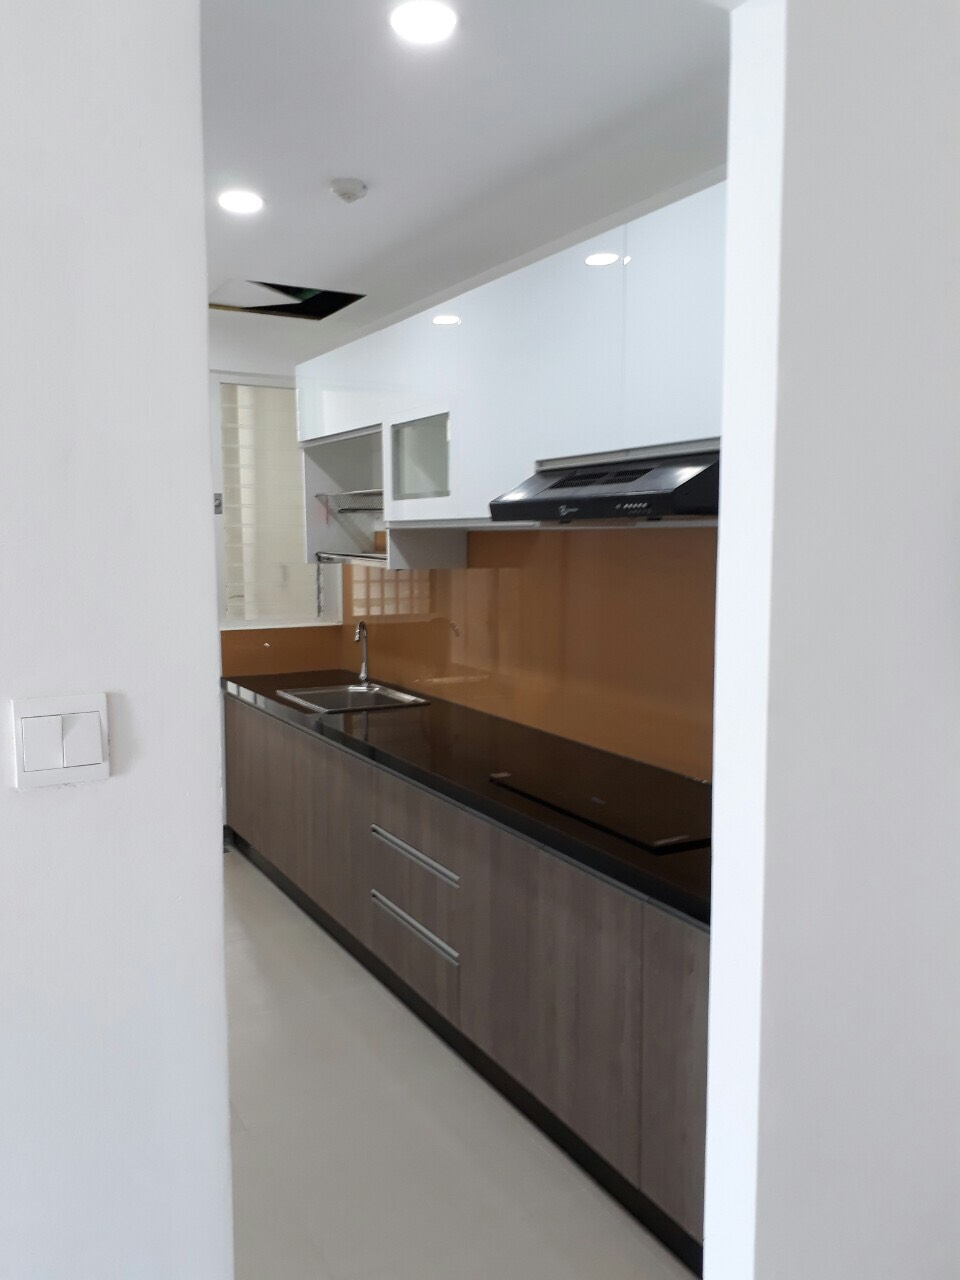 apartment for rent in district 2 hcmc vista verde apartment for rent in district 2 hcmc D221415 (7)